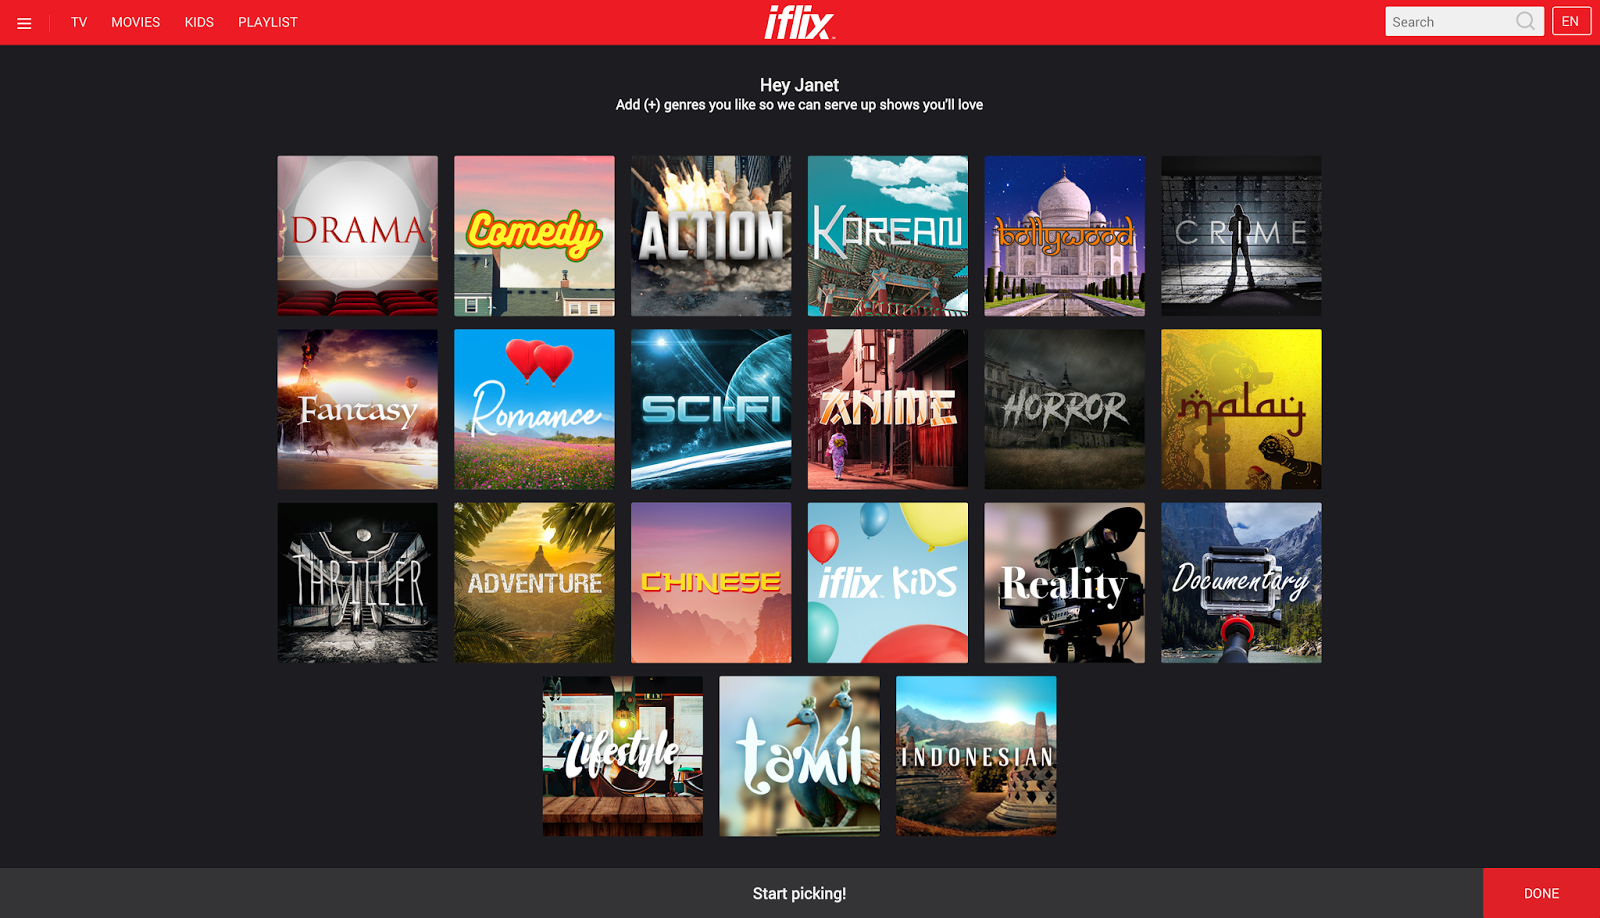 Giveaway get a free month of iflix on us heres the details on what better way to get a voucher code for a free month of iflix goodness we currently have a lot of codes to giveaway and stopboris Images